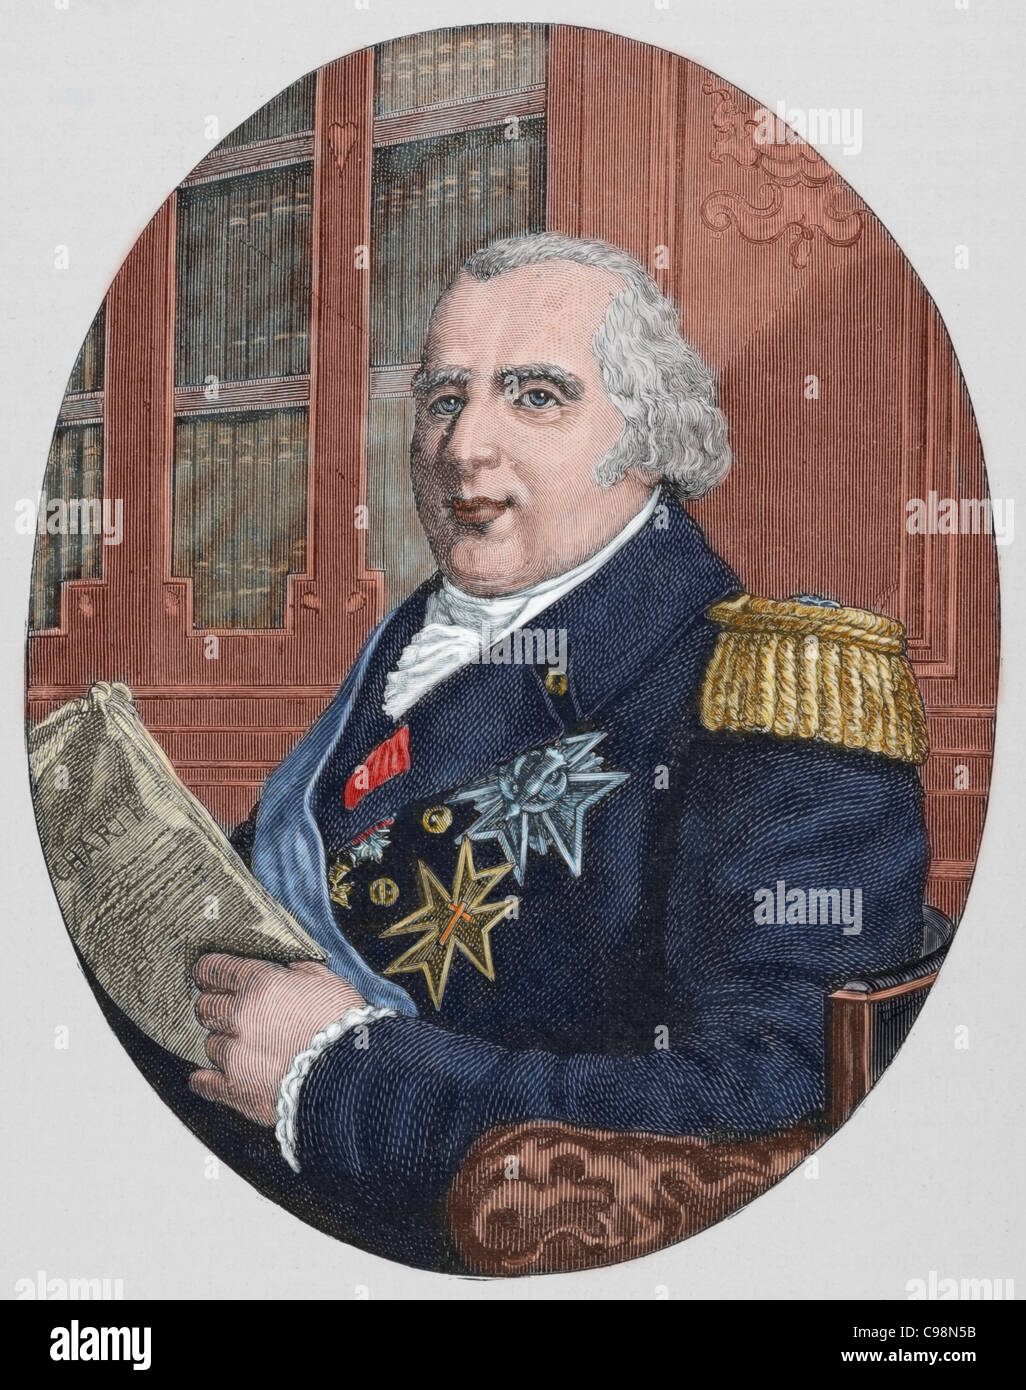 Louis XVIII (1755-1824). King of France from 1814-15 and ...